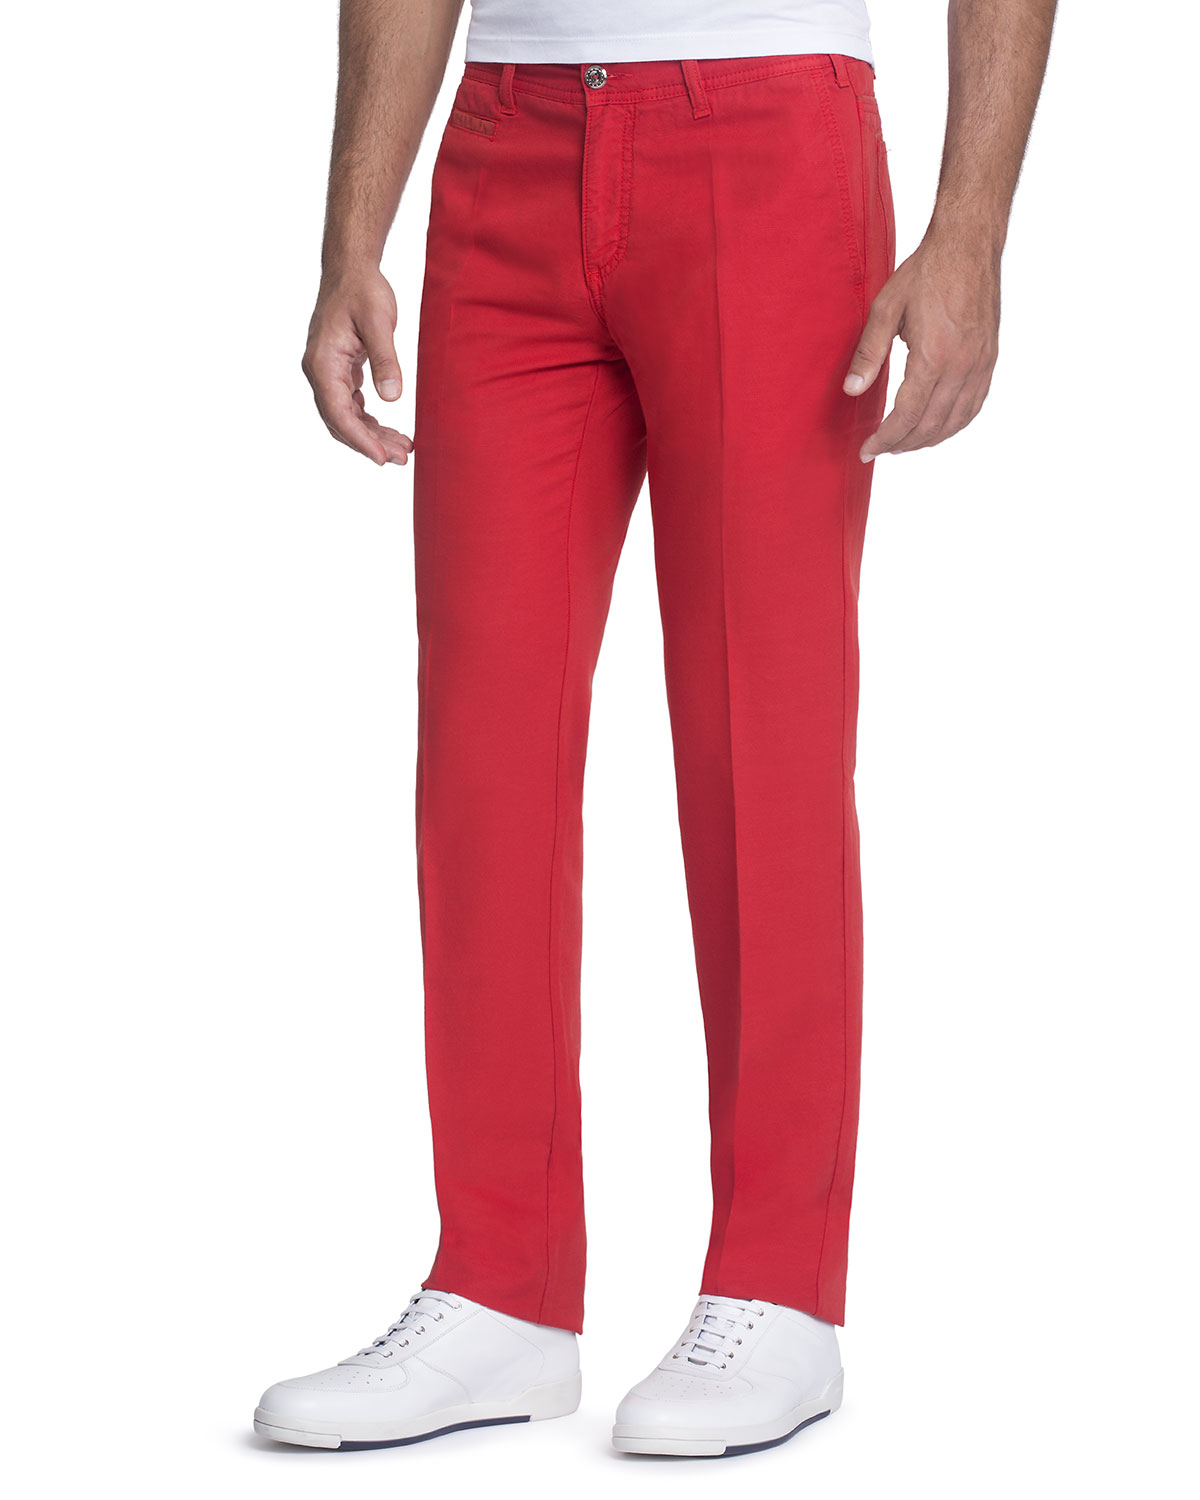 Stefano Ricci Red Linen-Blend Pants with Suede Details